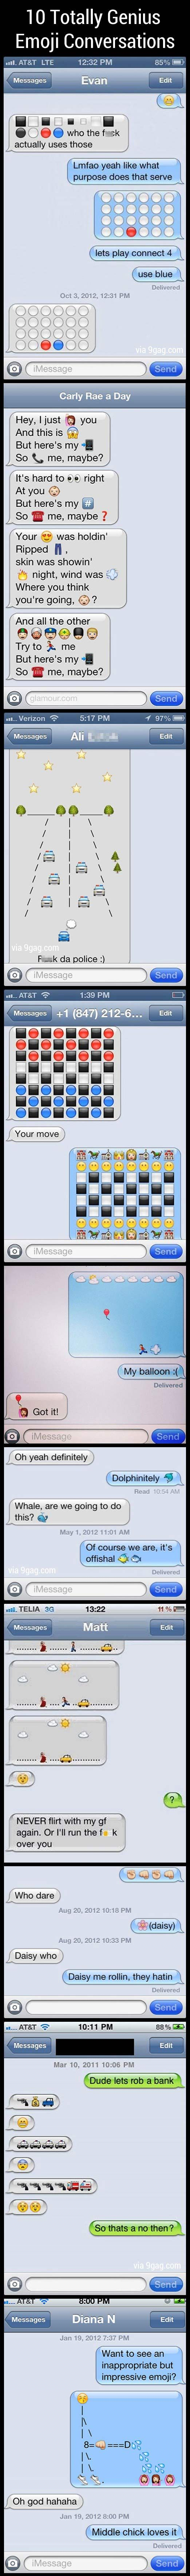 Best Emoji Conversations… last one is crude but the rest are awesome.